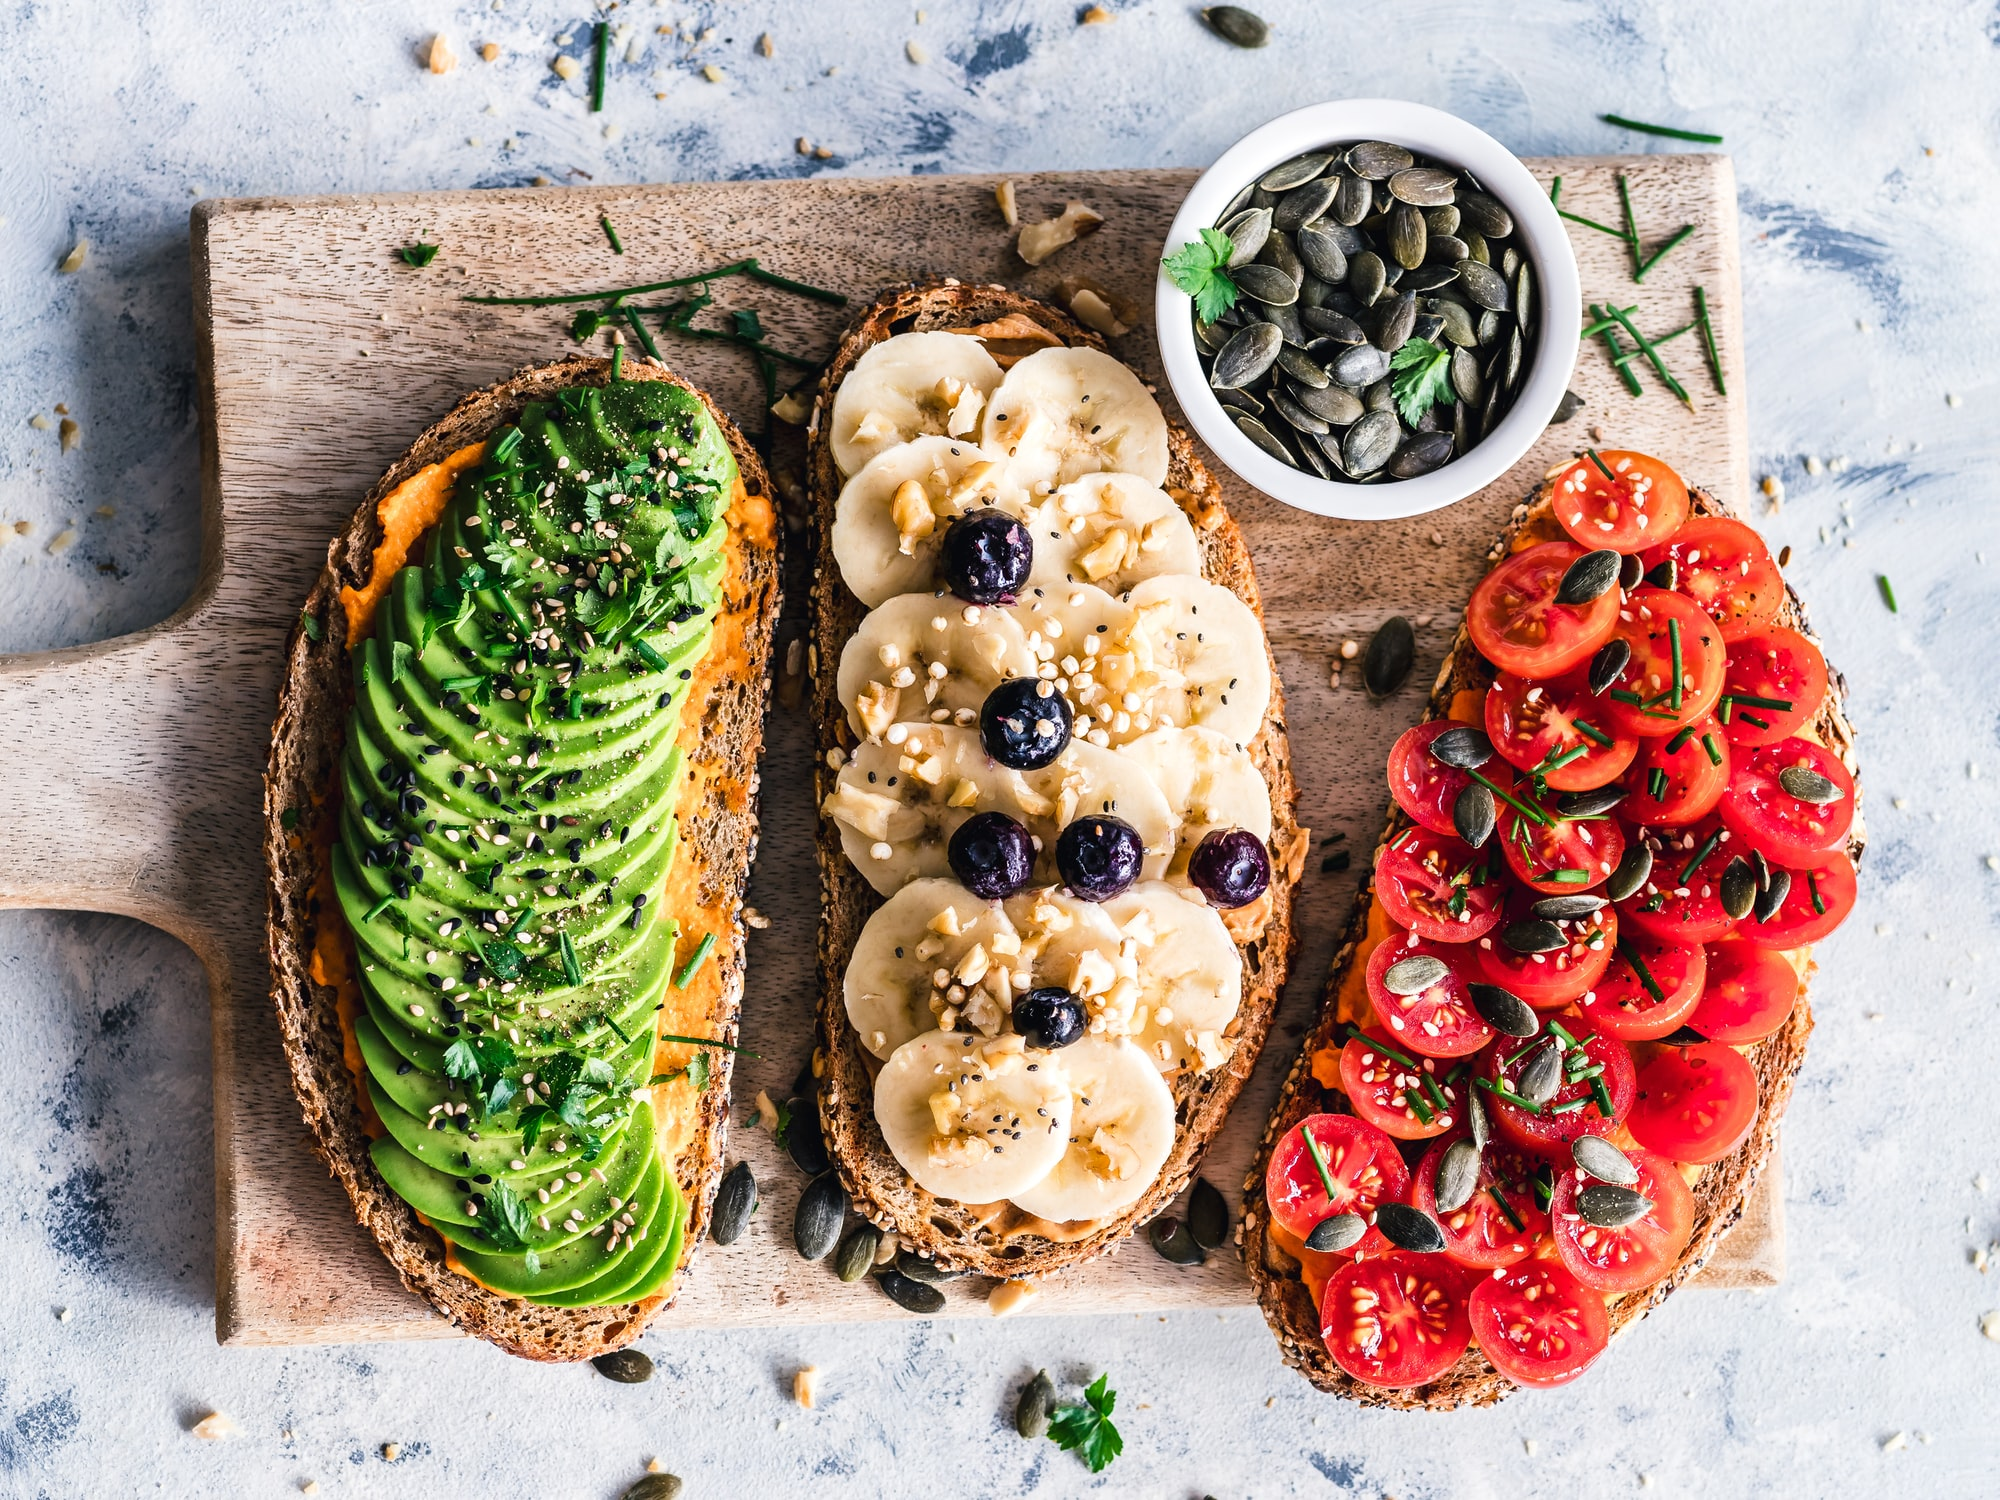 Bread toasts with avocado, banana, tomato. Easy to make, great for a quick breakfast.